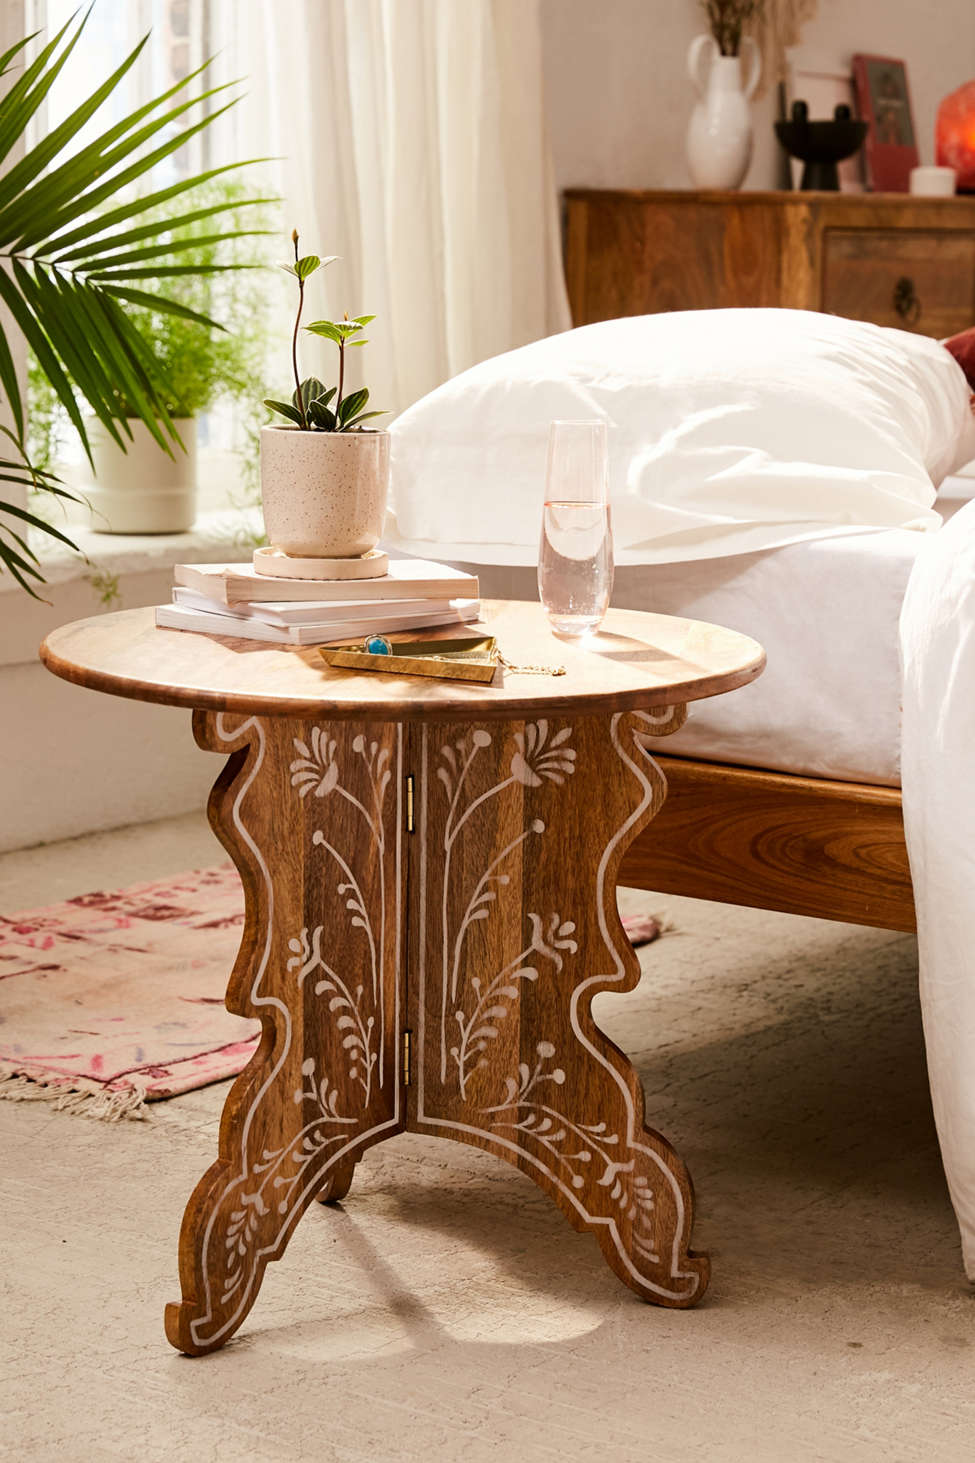 Slide View: 1: Mia Floral Side Table